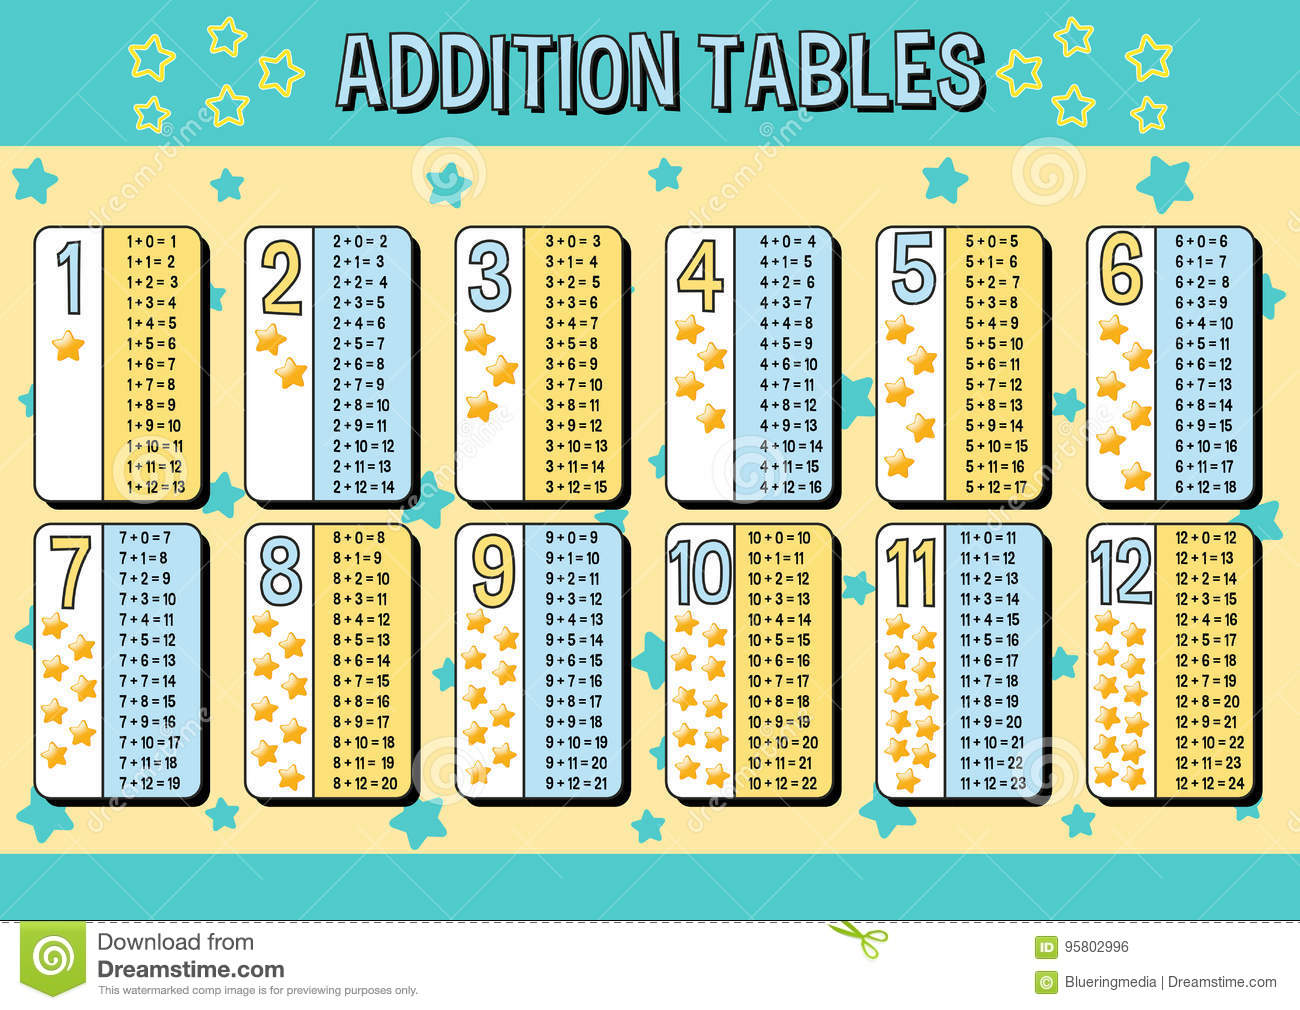 Addition Tables Chart With Blue And Yellow Stars